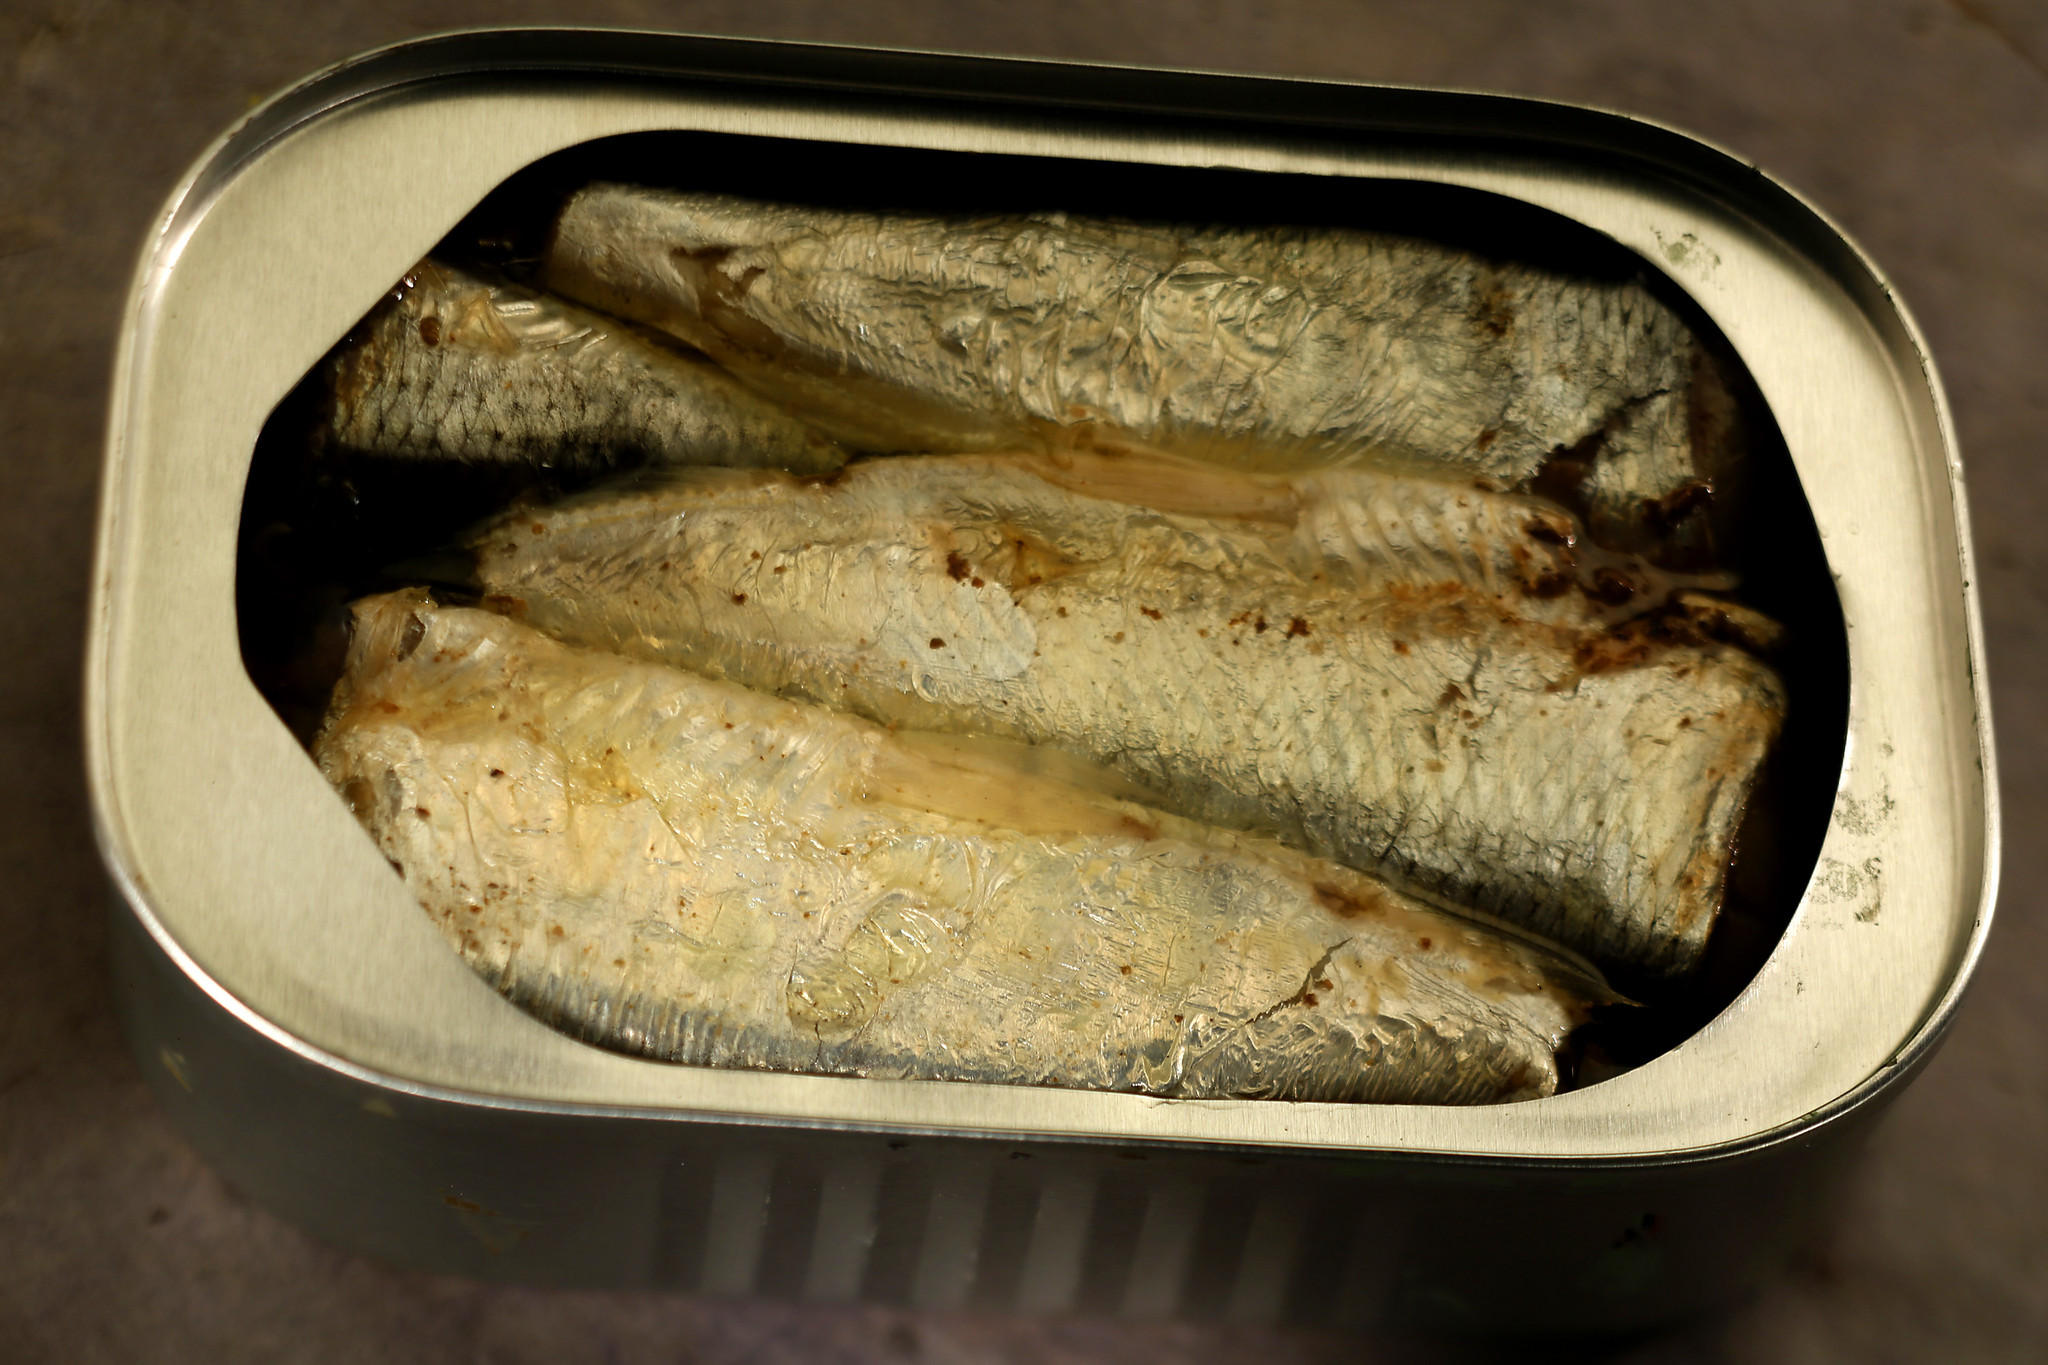 Canned sardine fish for sale